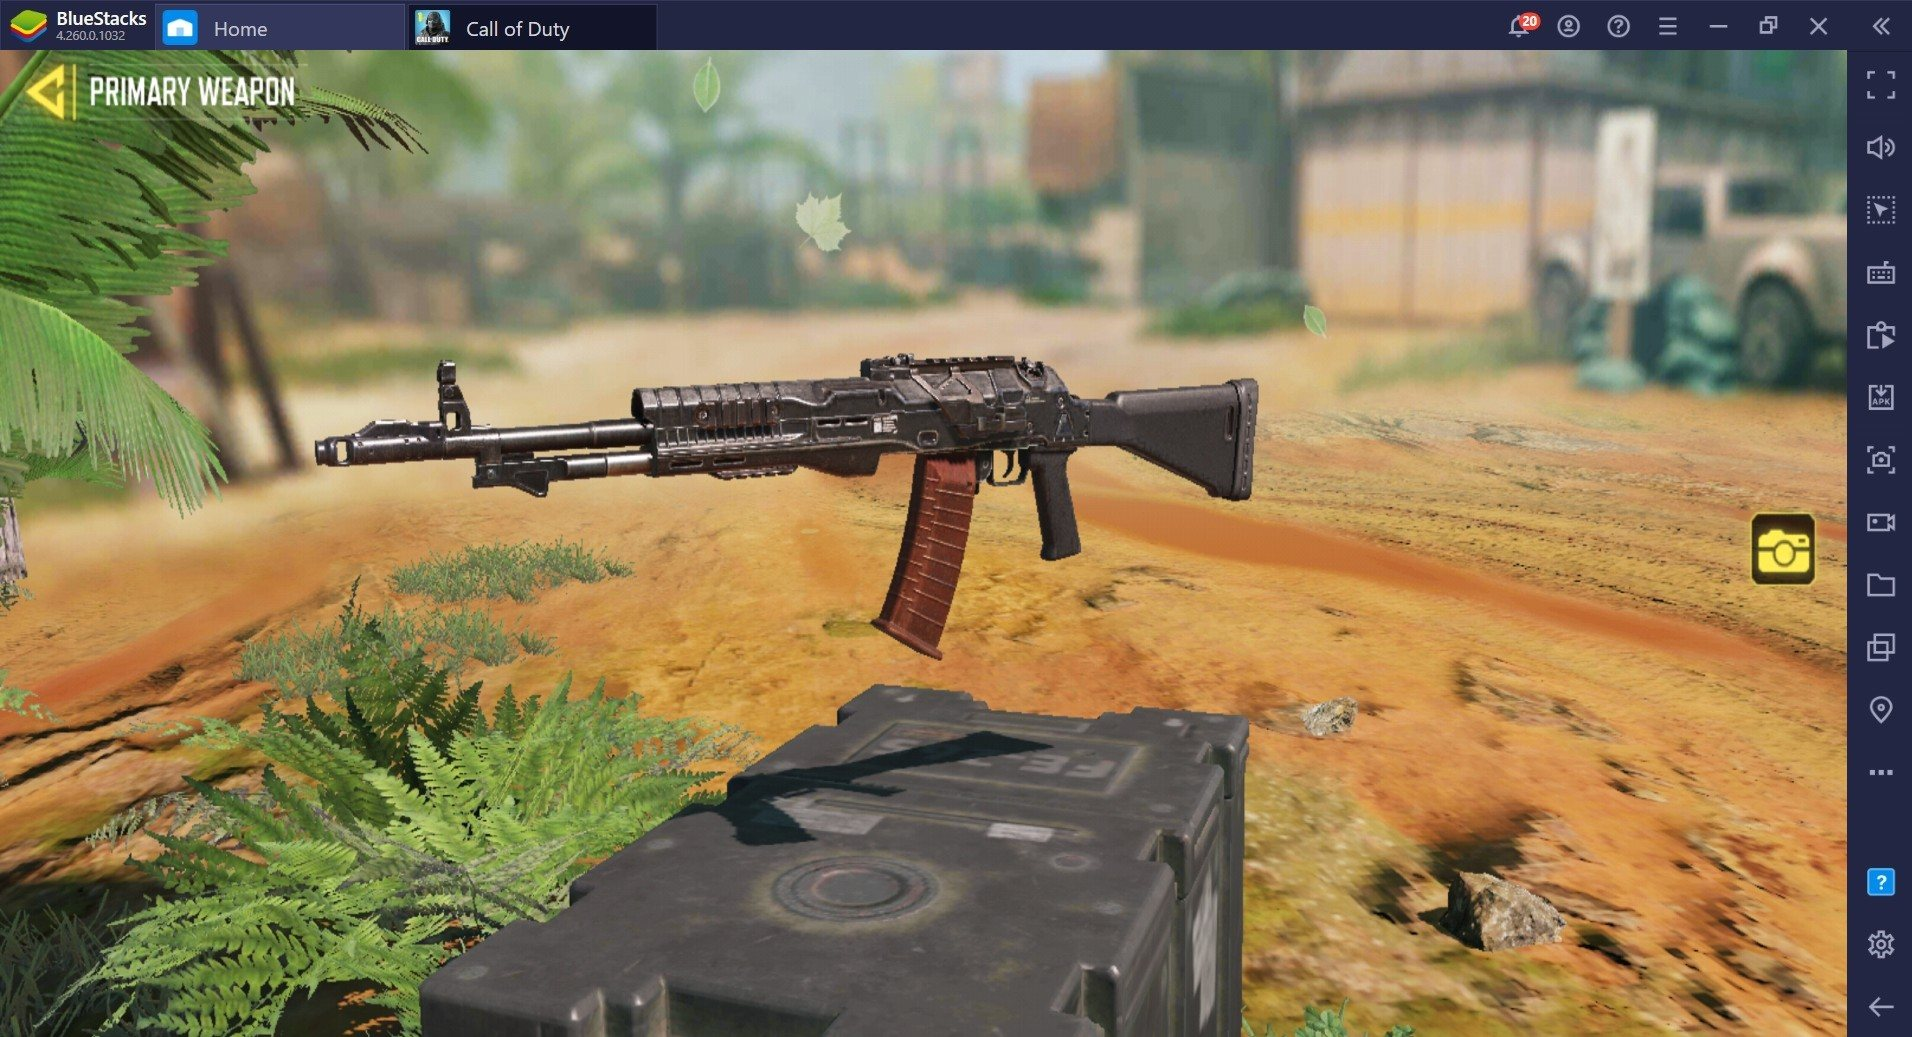 Call of Duty:Mobile Season 1 Weapon Guide, 10 Guns Ranked for Ranked Matches